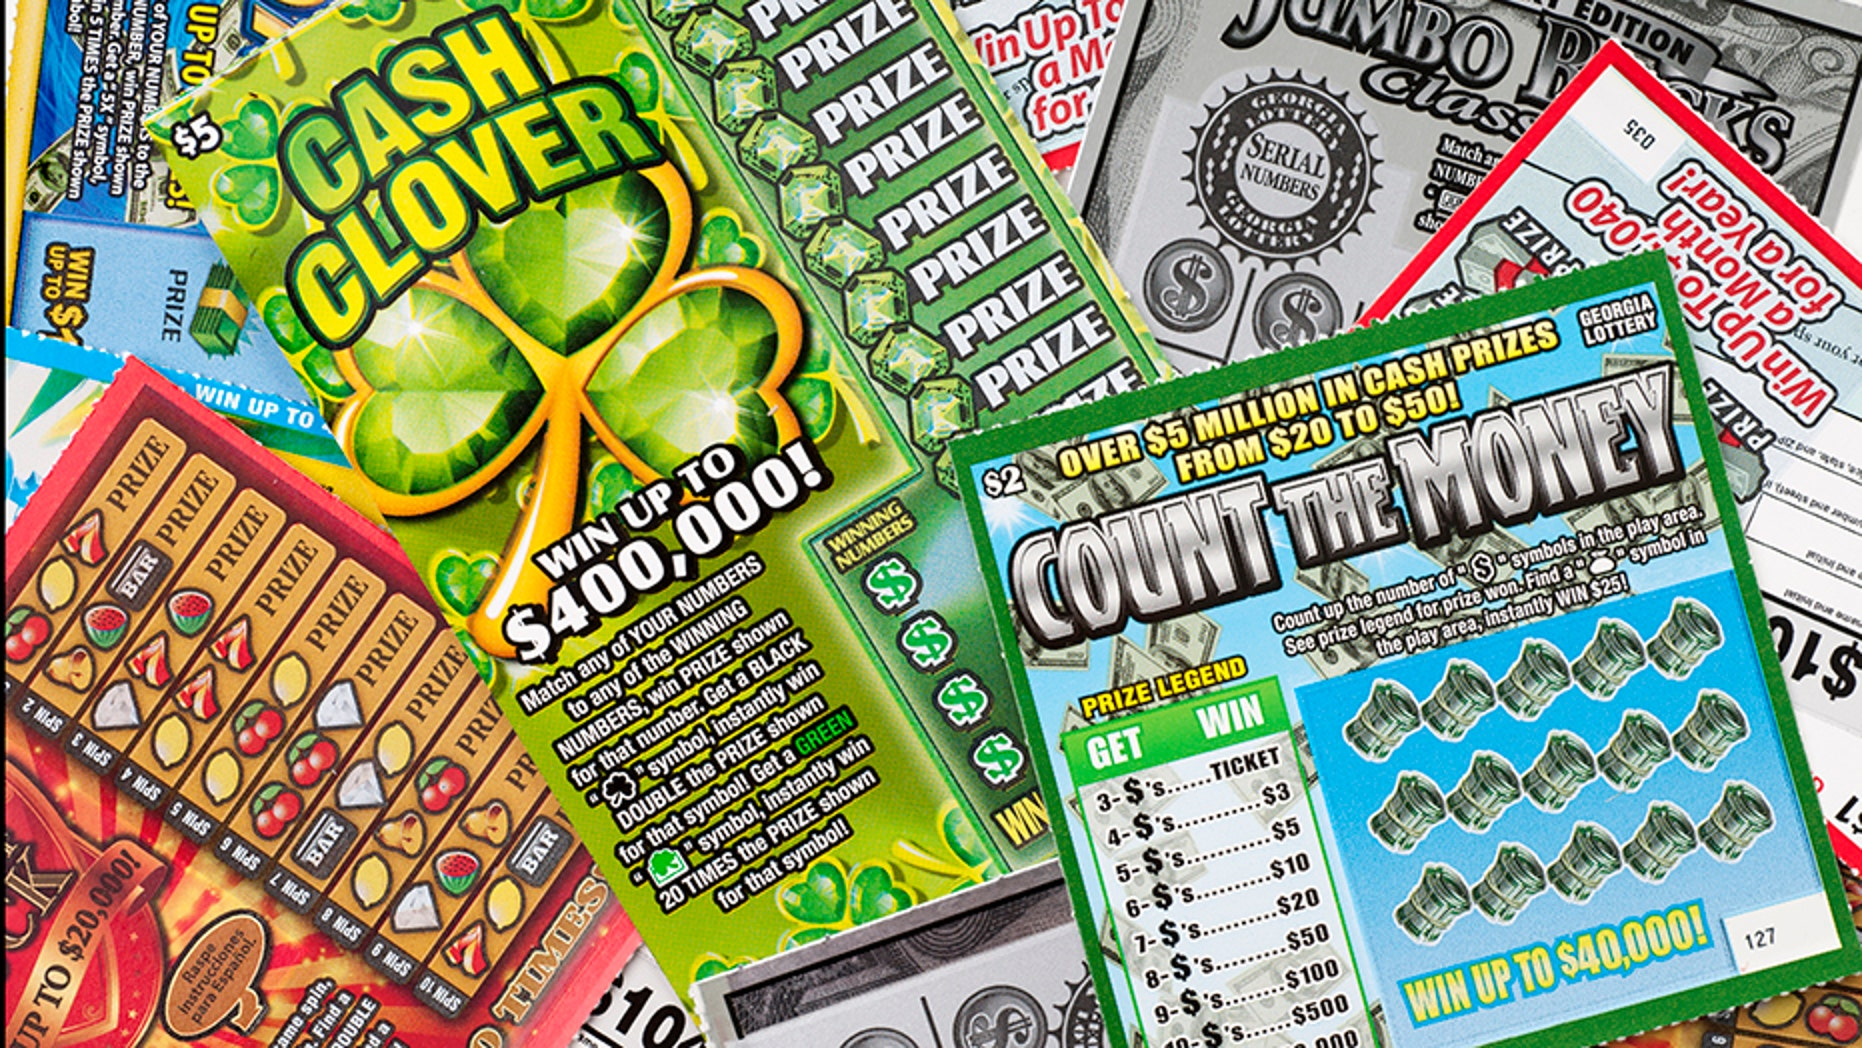 A couple in Michigan nearly missed out on winning $2 million from a scratch-off lottery ticket after the woman who received the ticket thought it was a dud.